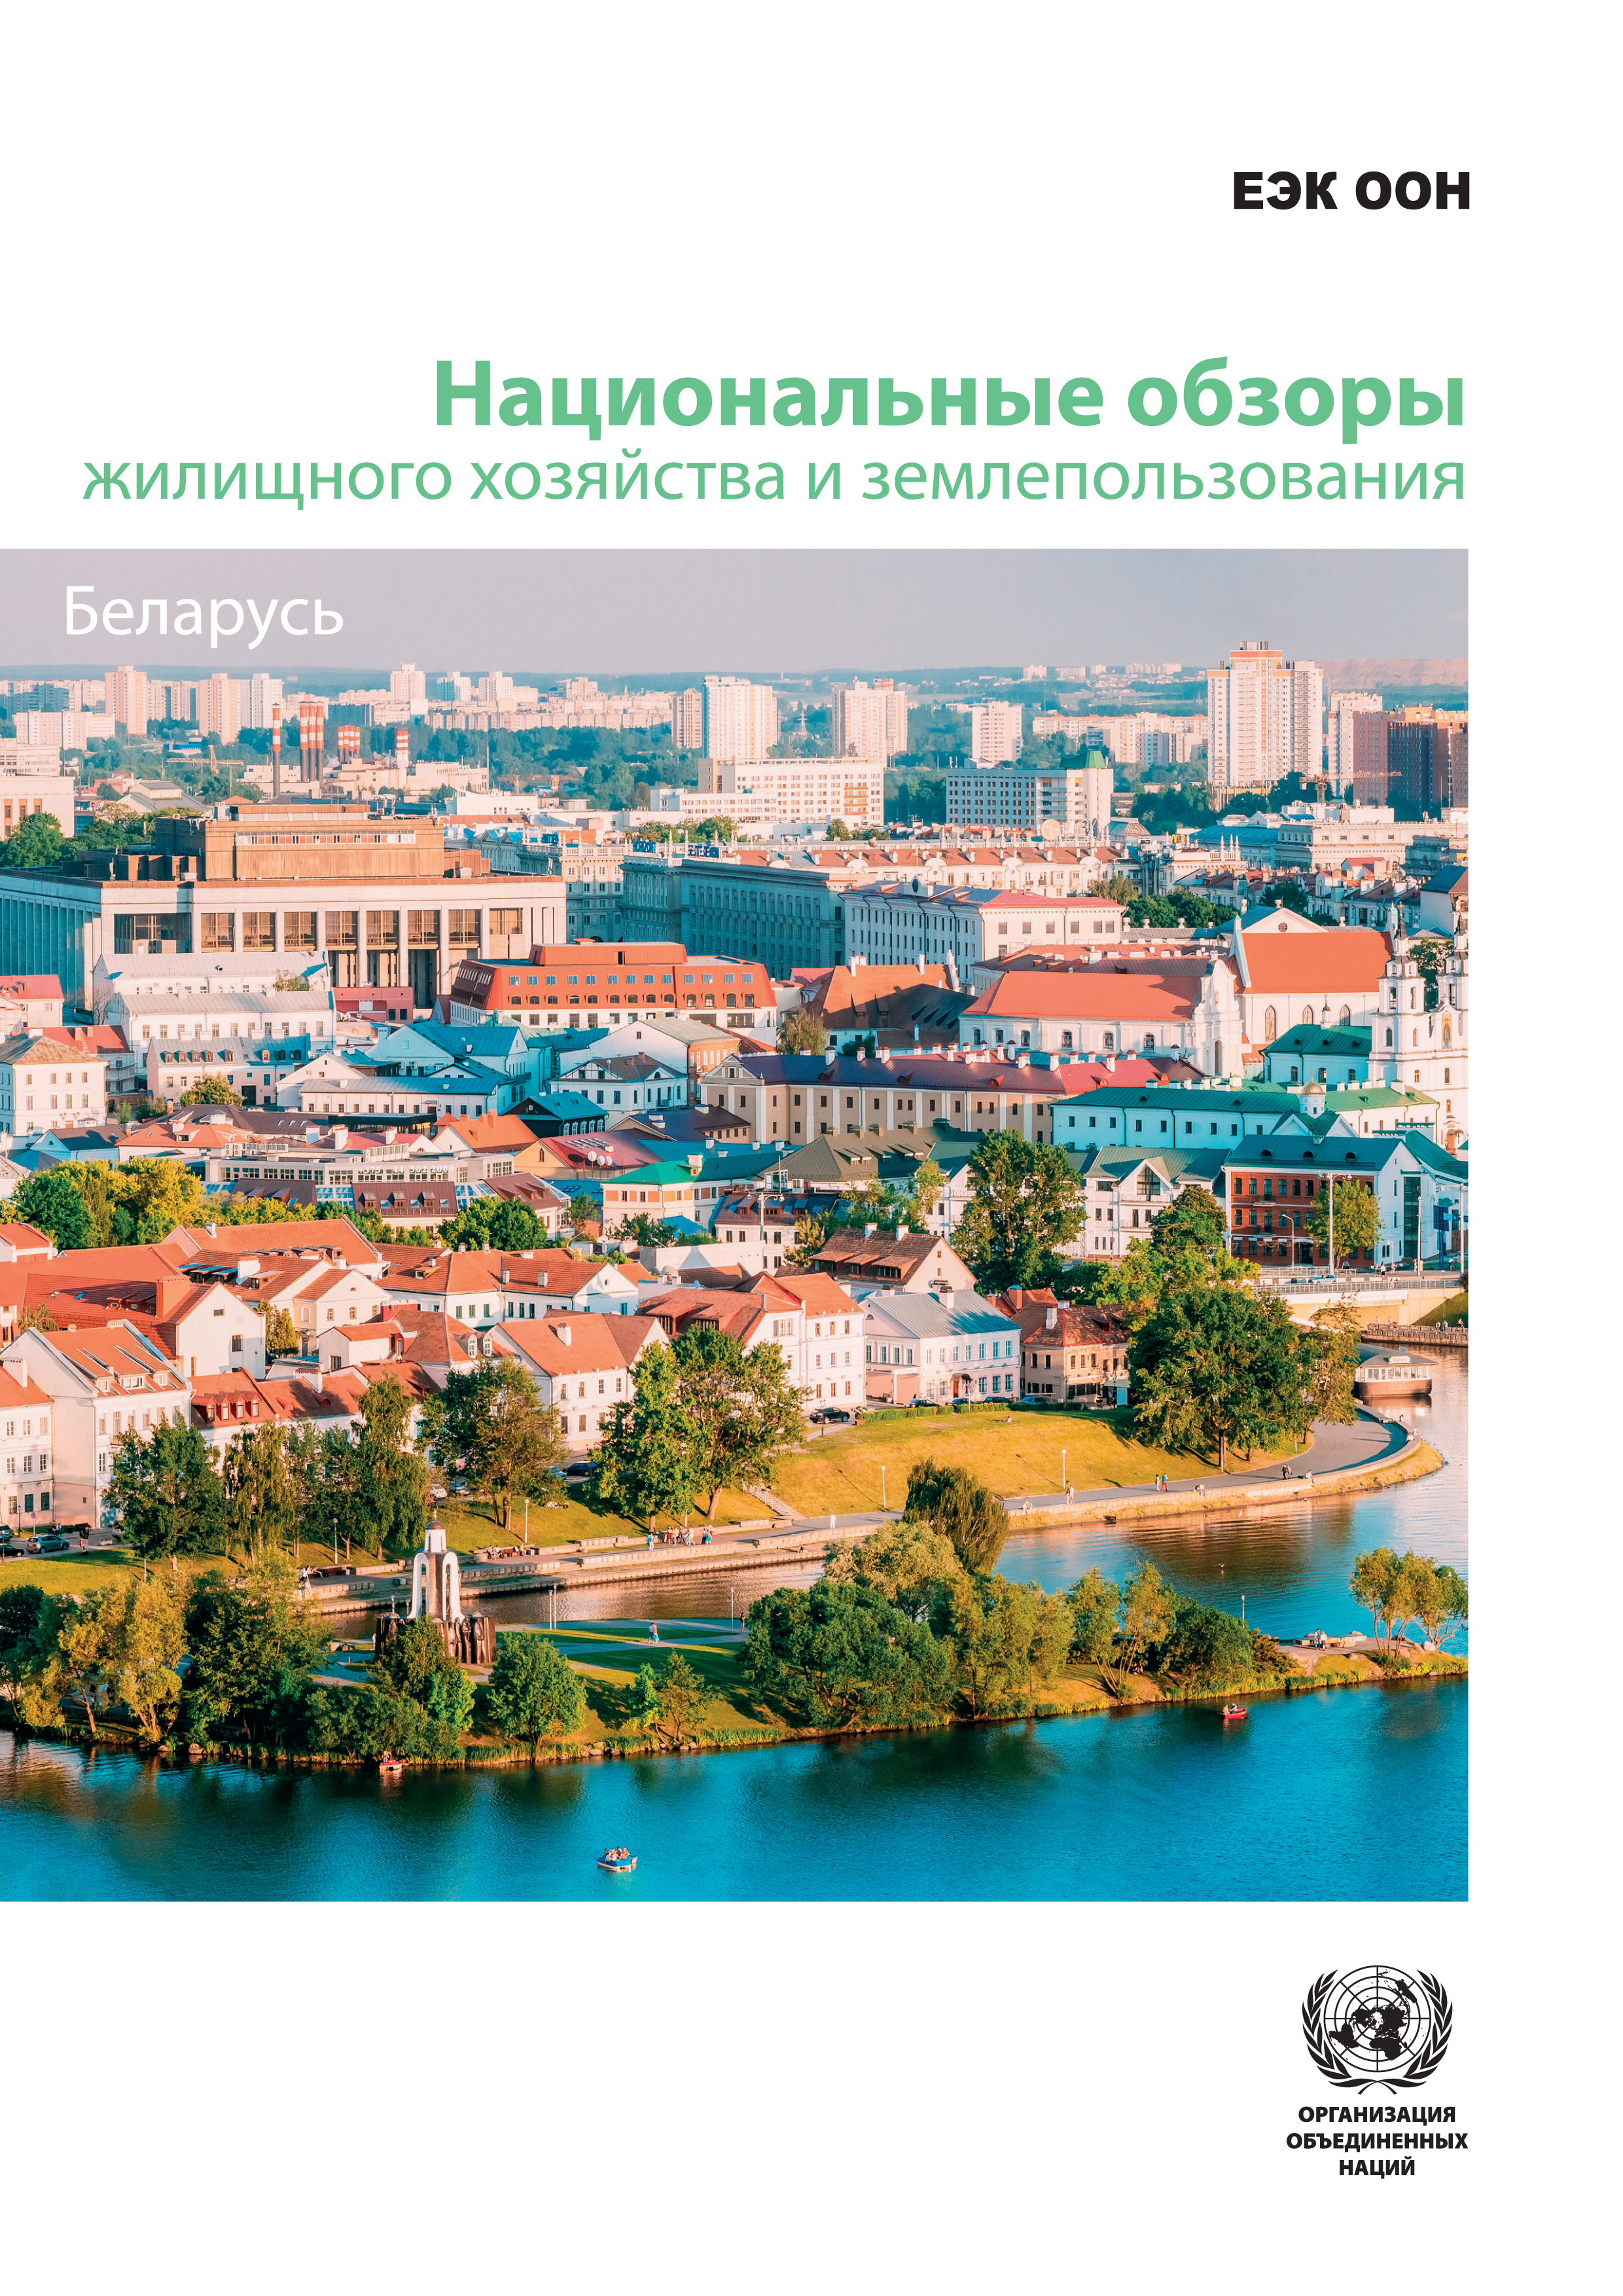 COUNTRY PROFILE ON BELARUS (R)